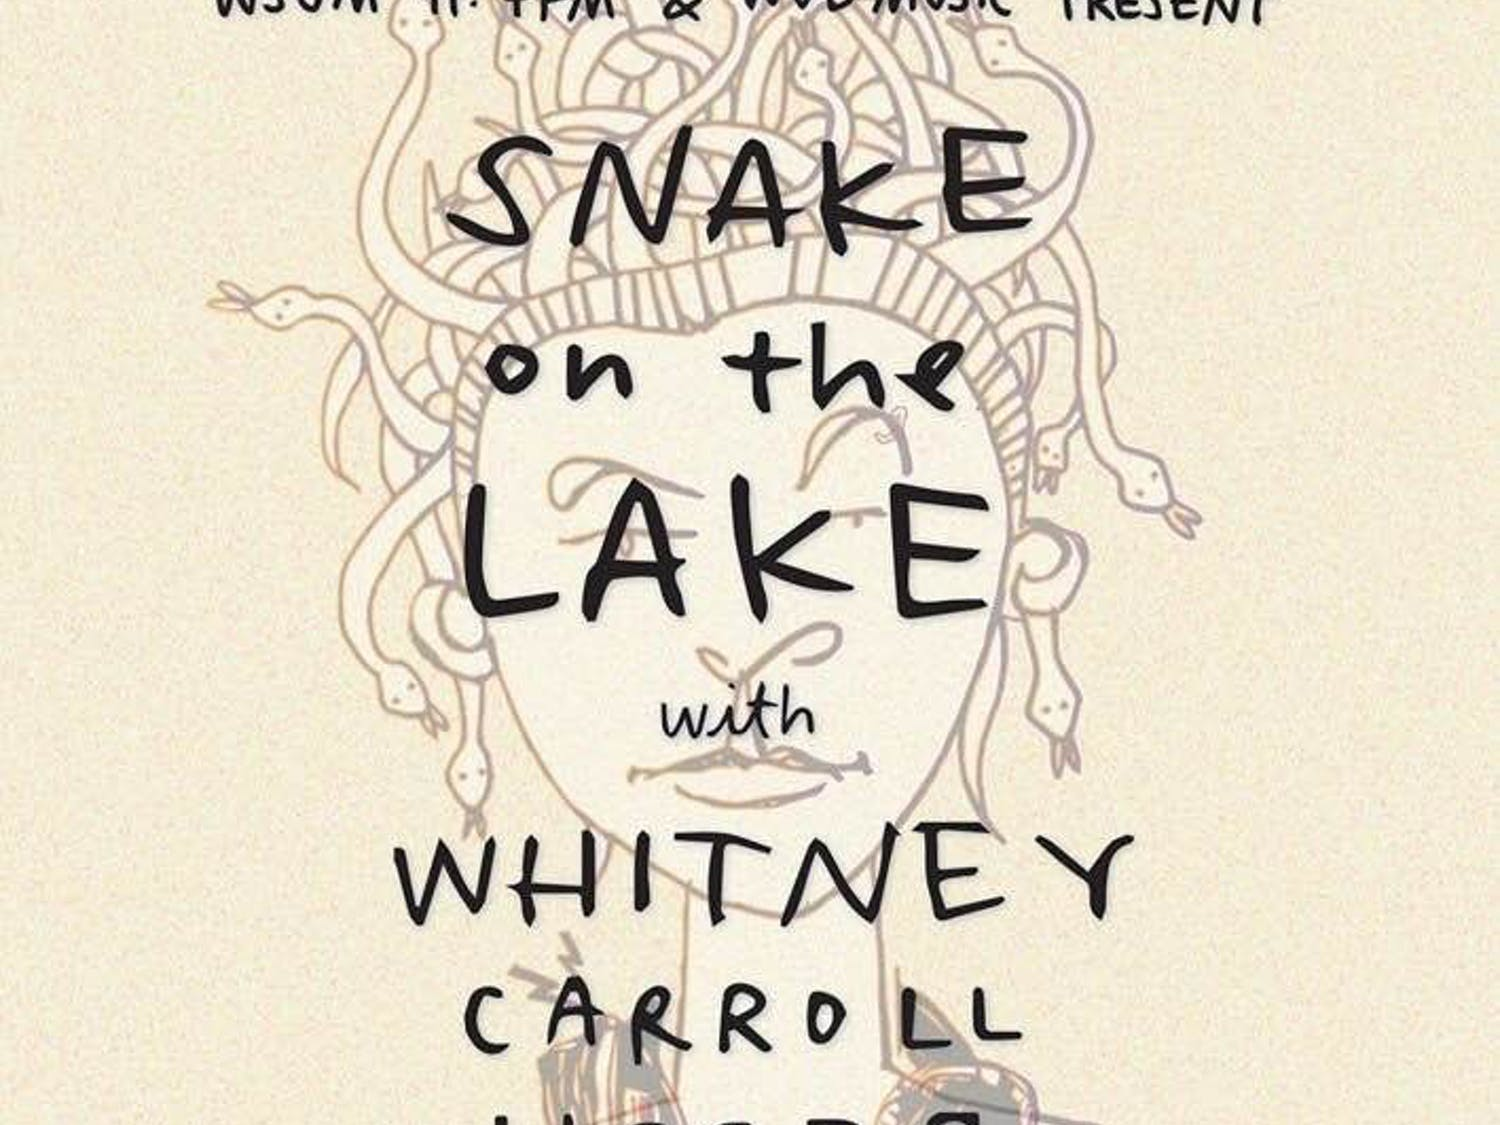 WSUM is readying to bring some exciting talenttoMadison withSnake on the Lake.